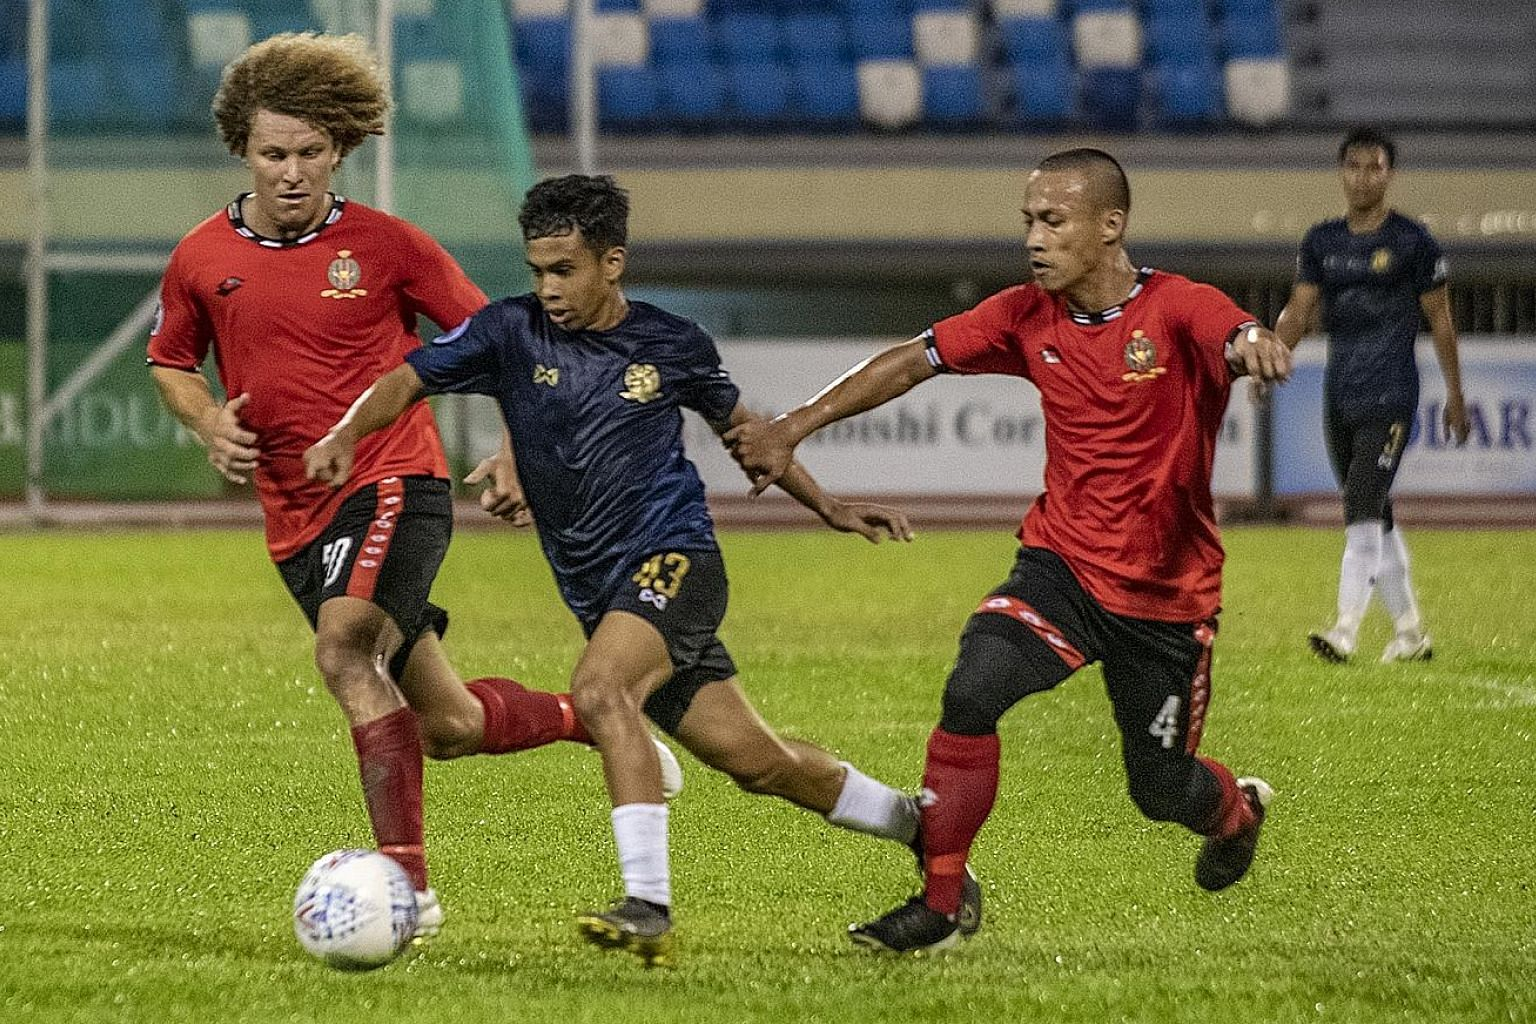 Hougang United's 16-year-old winger Farhan Zulkifli (centre), a first-year electrical engineering student at ITE College West, has 10 senior club starts since his Singapore Premier League debut in June.